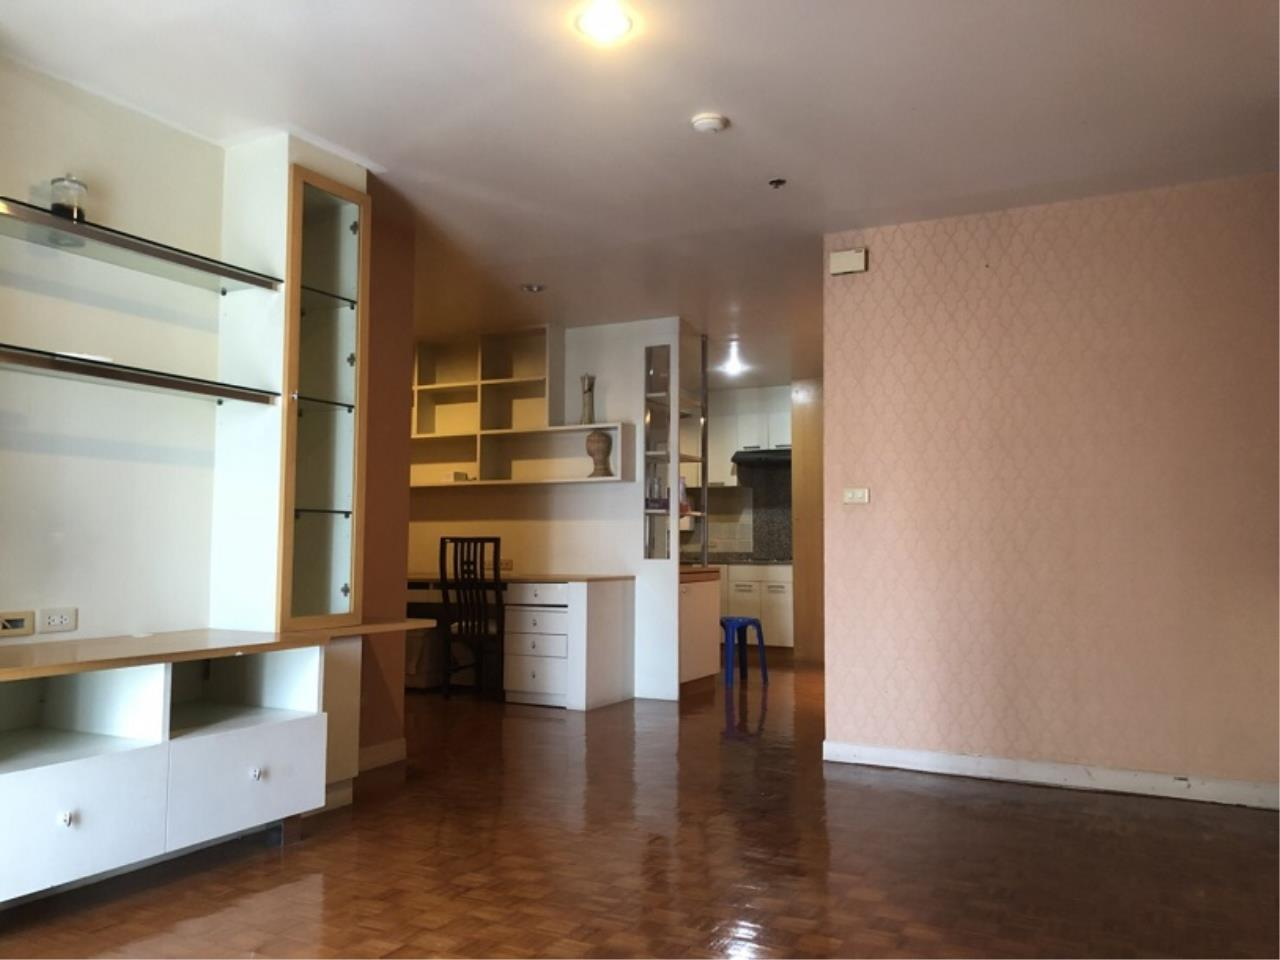 RE/MAX All Star Realty Agency's Silom Suite for sale/rent (BTS Chong Nonsi/ Surasak) 1